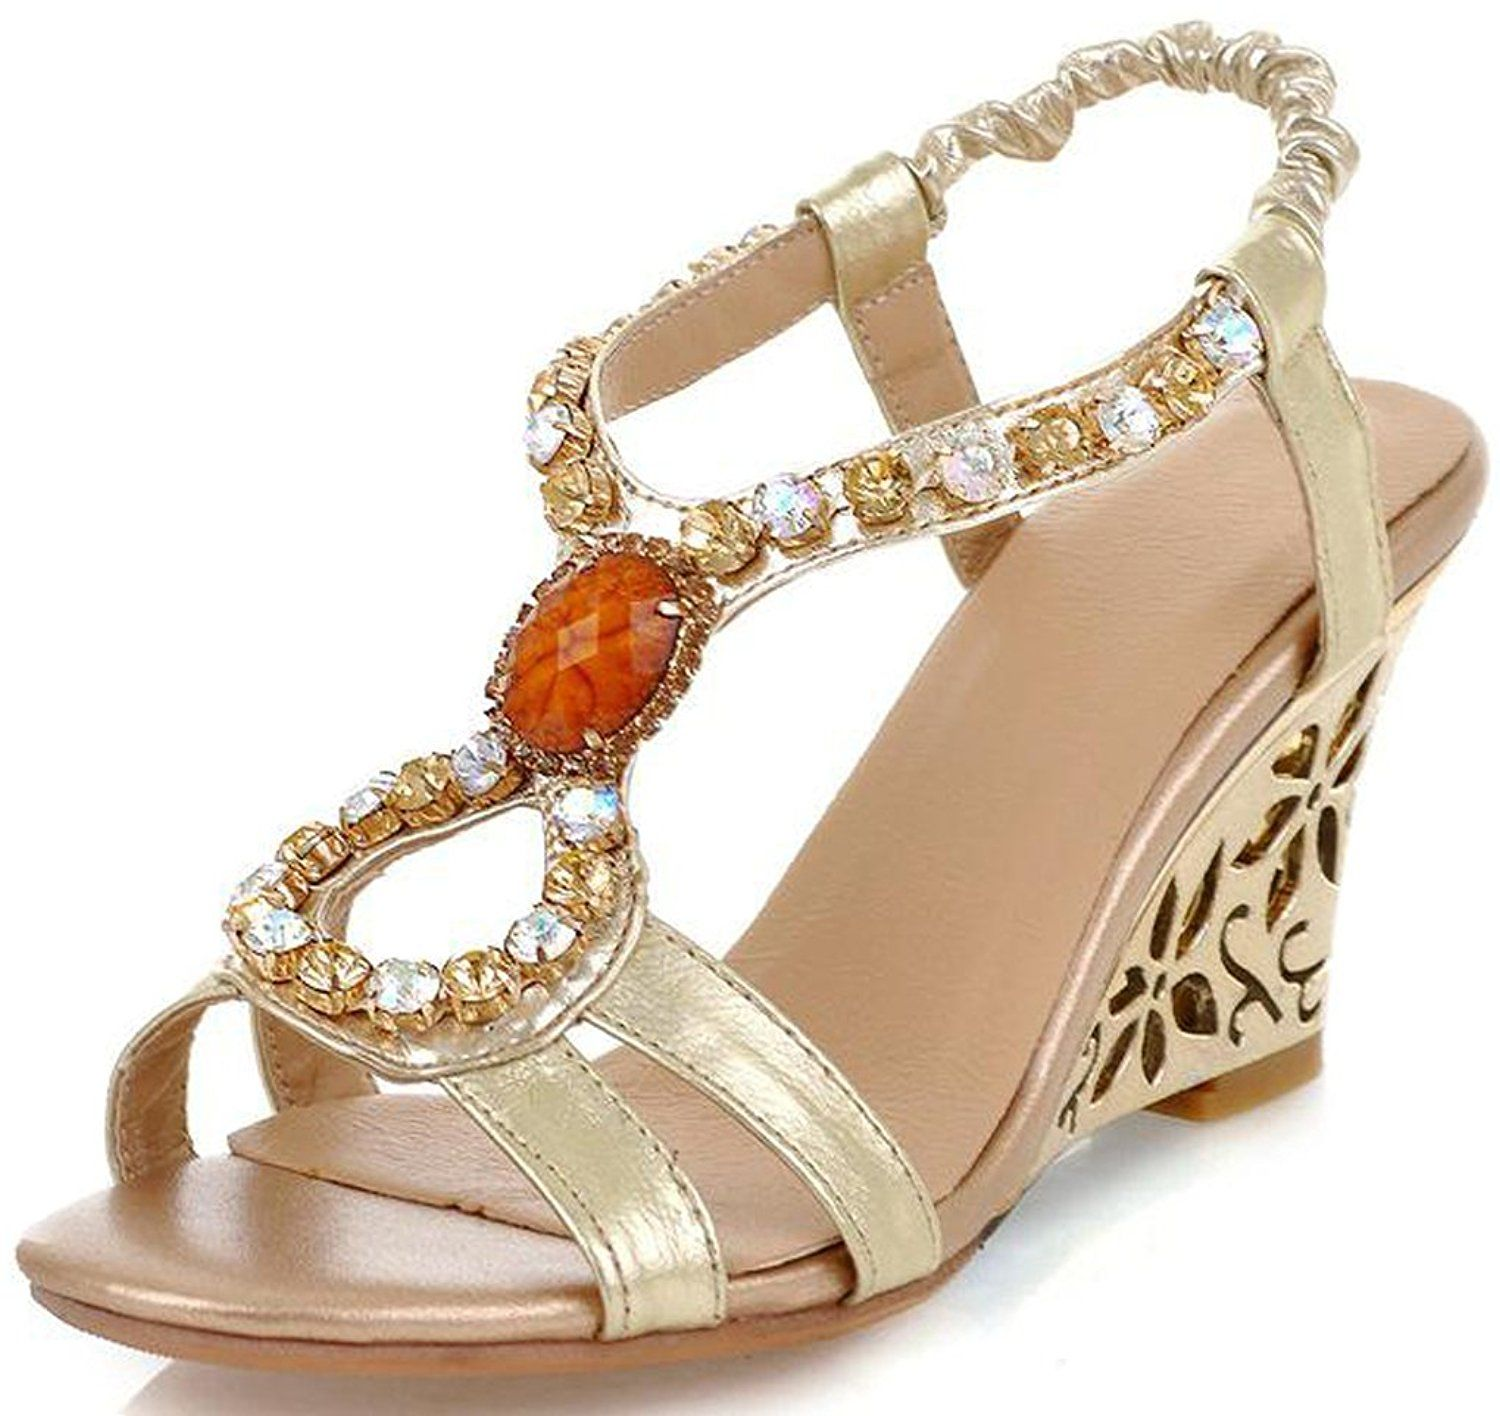 MissPretty Exotic Colorful Summer Sandal Wedge Peep Toe Gems Slingback Heeled Sandal ** You can find out more details at the link of the image.